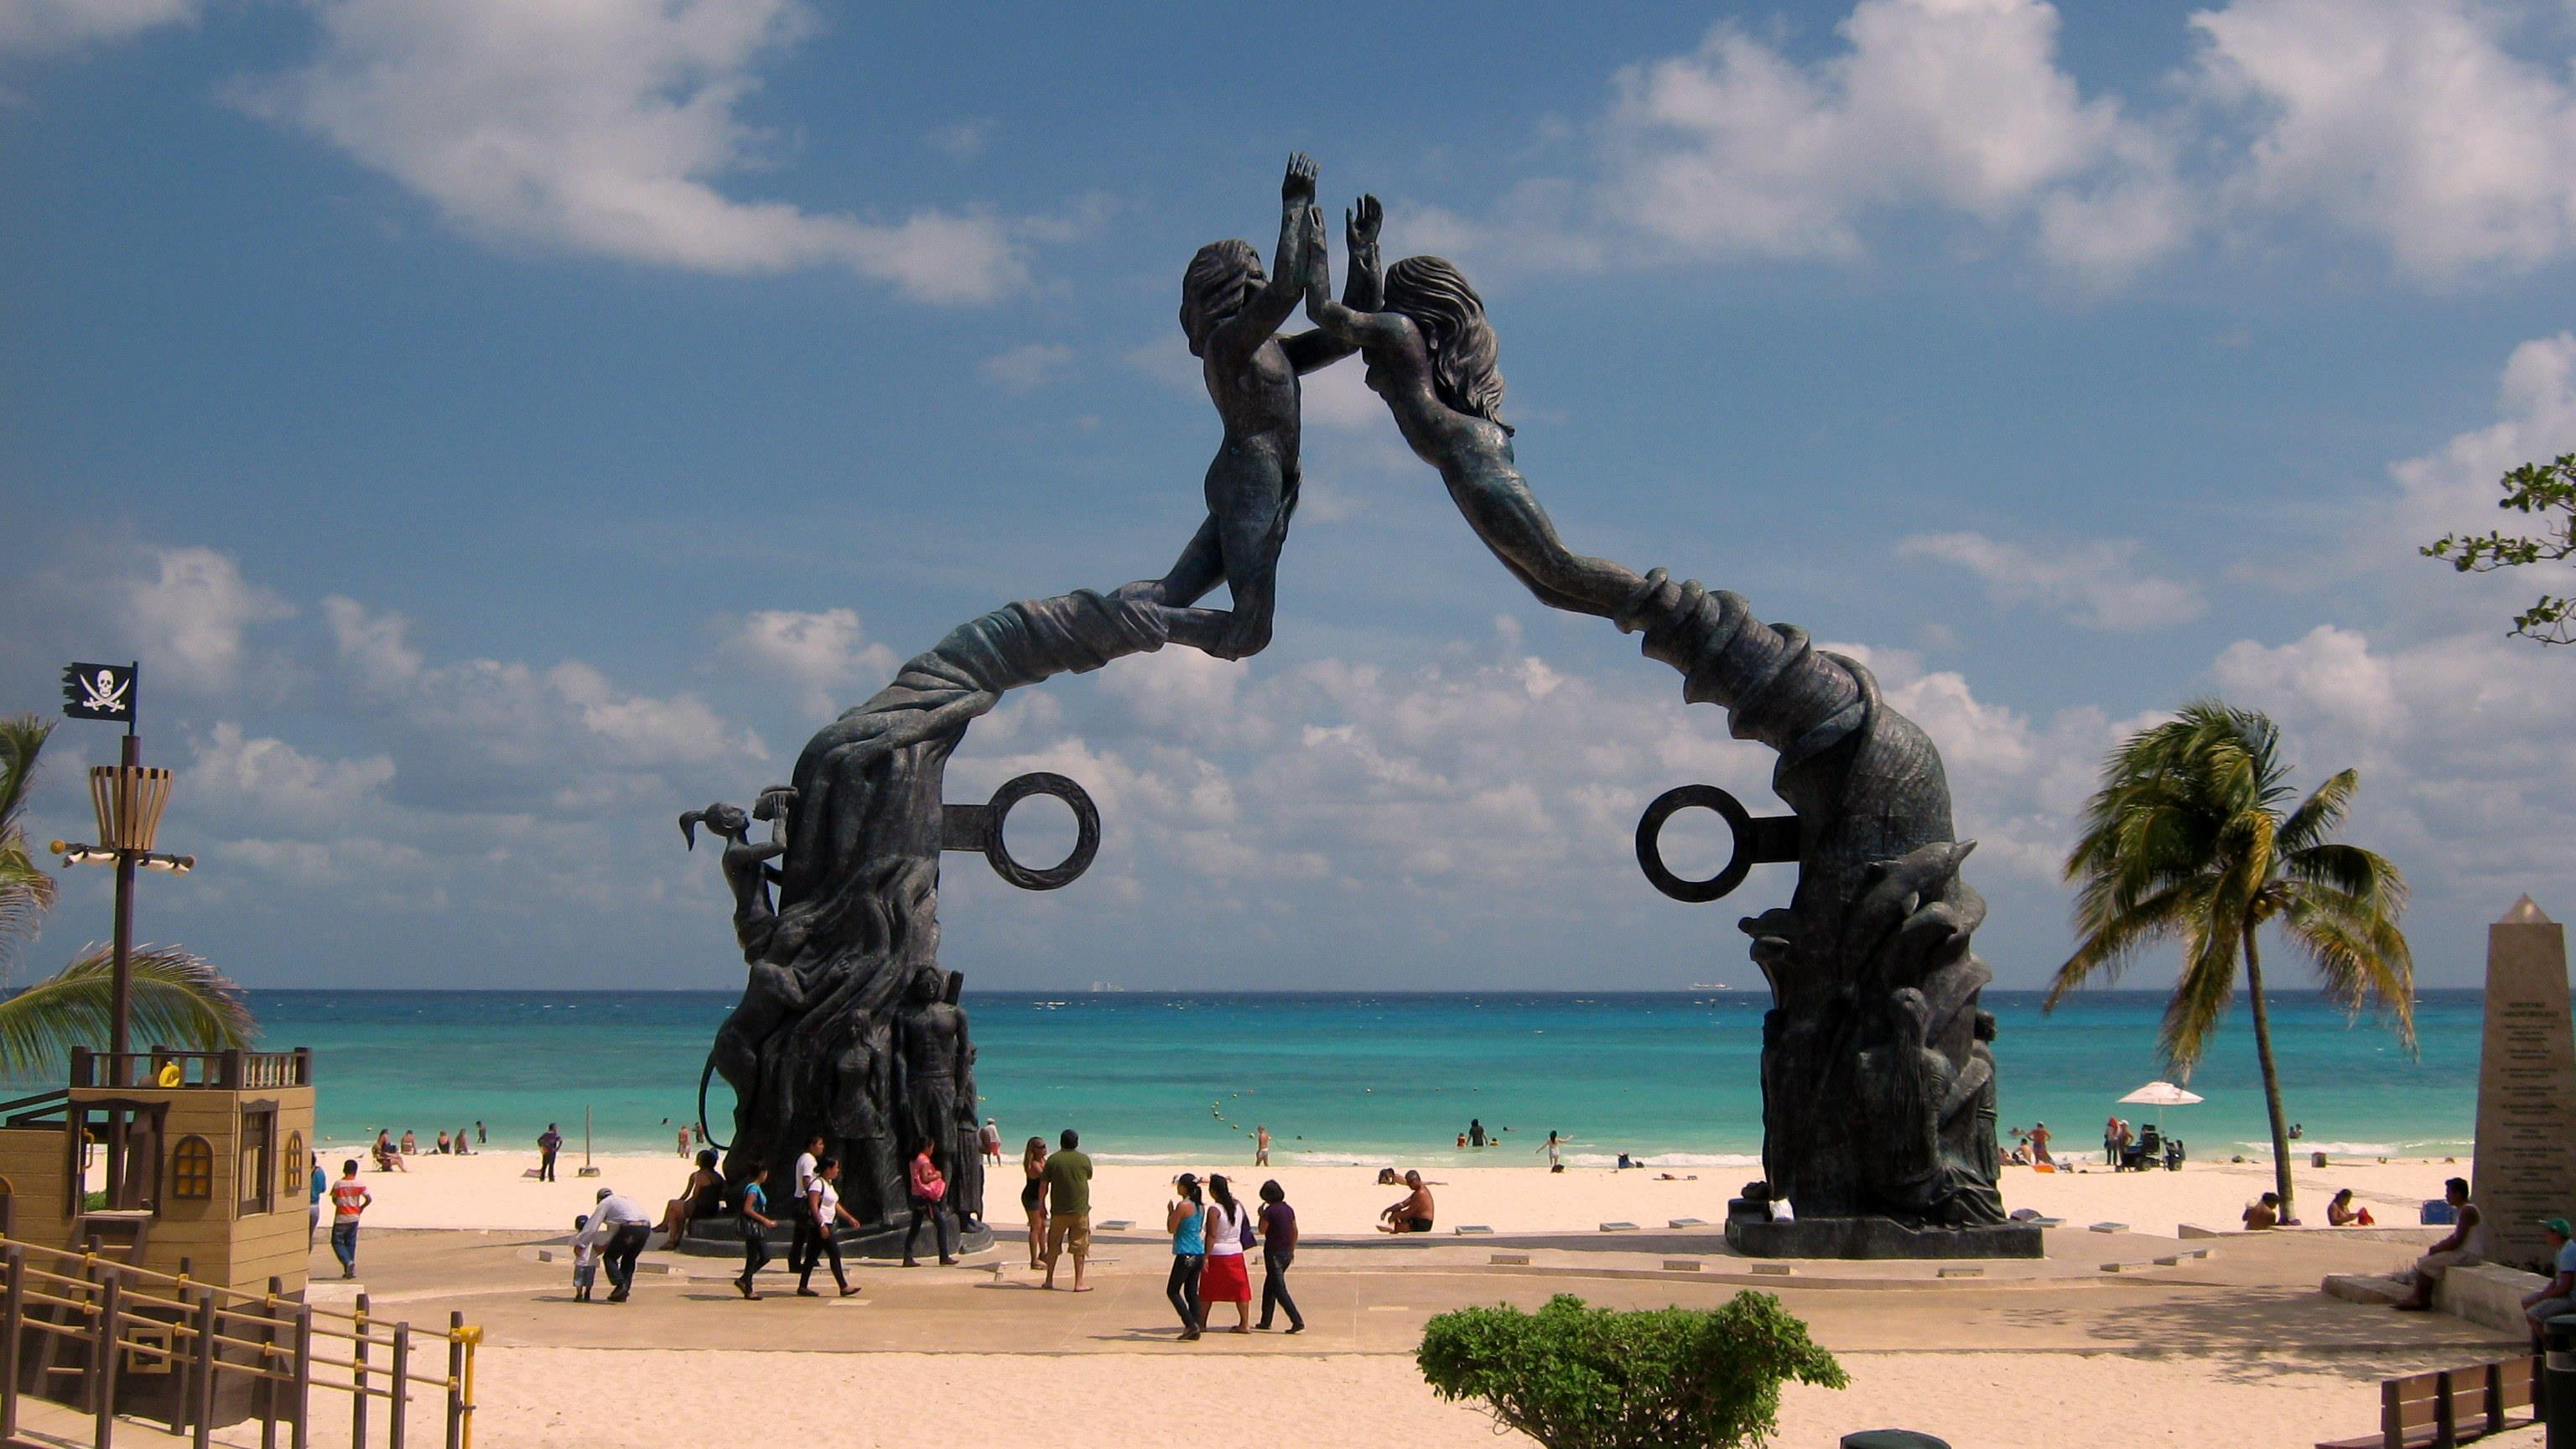 Fundadores Park in central Playa del Carmen